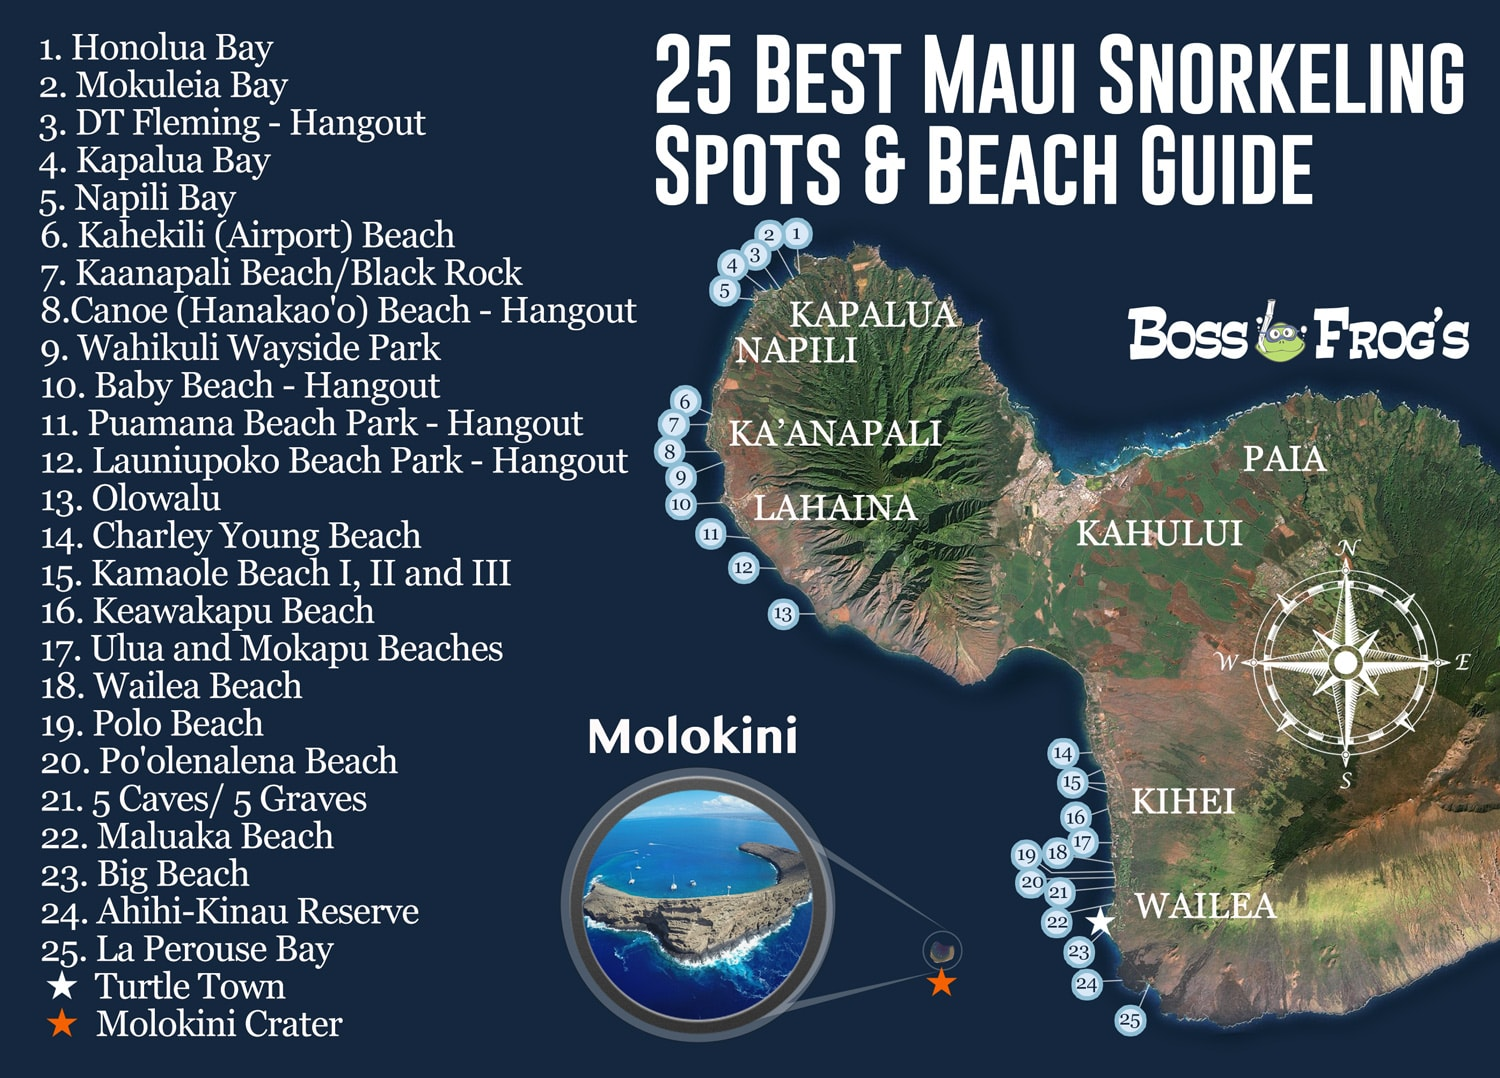 Map Of Maui Beaches 25 Best Maui Snorkeling Spots & Beach Guide | Videos & Photos! Map Of Maui Beaches